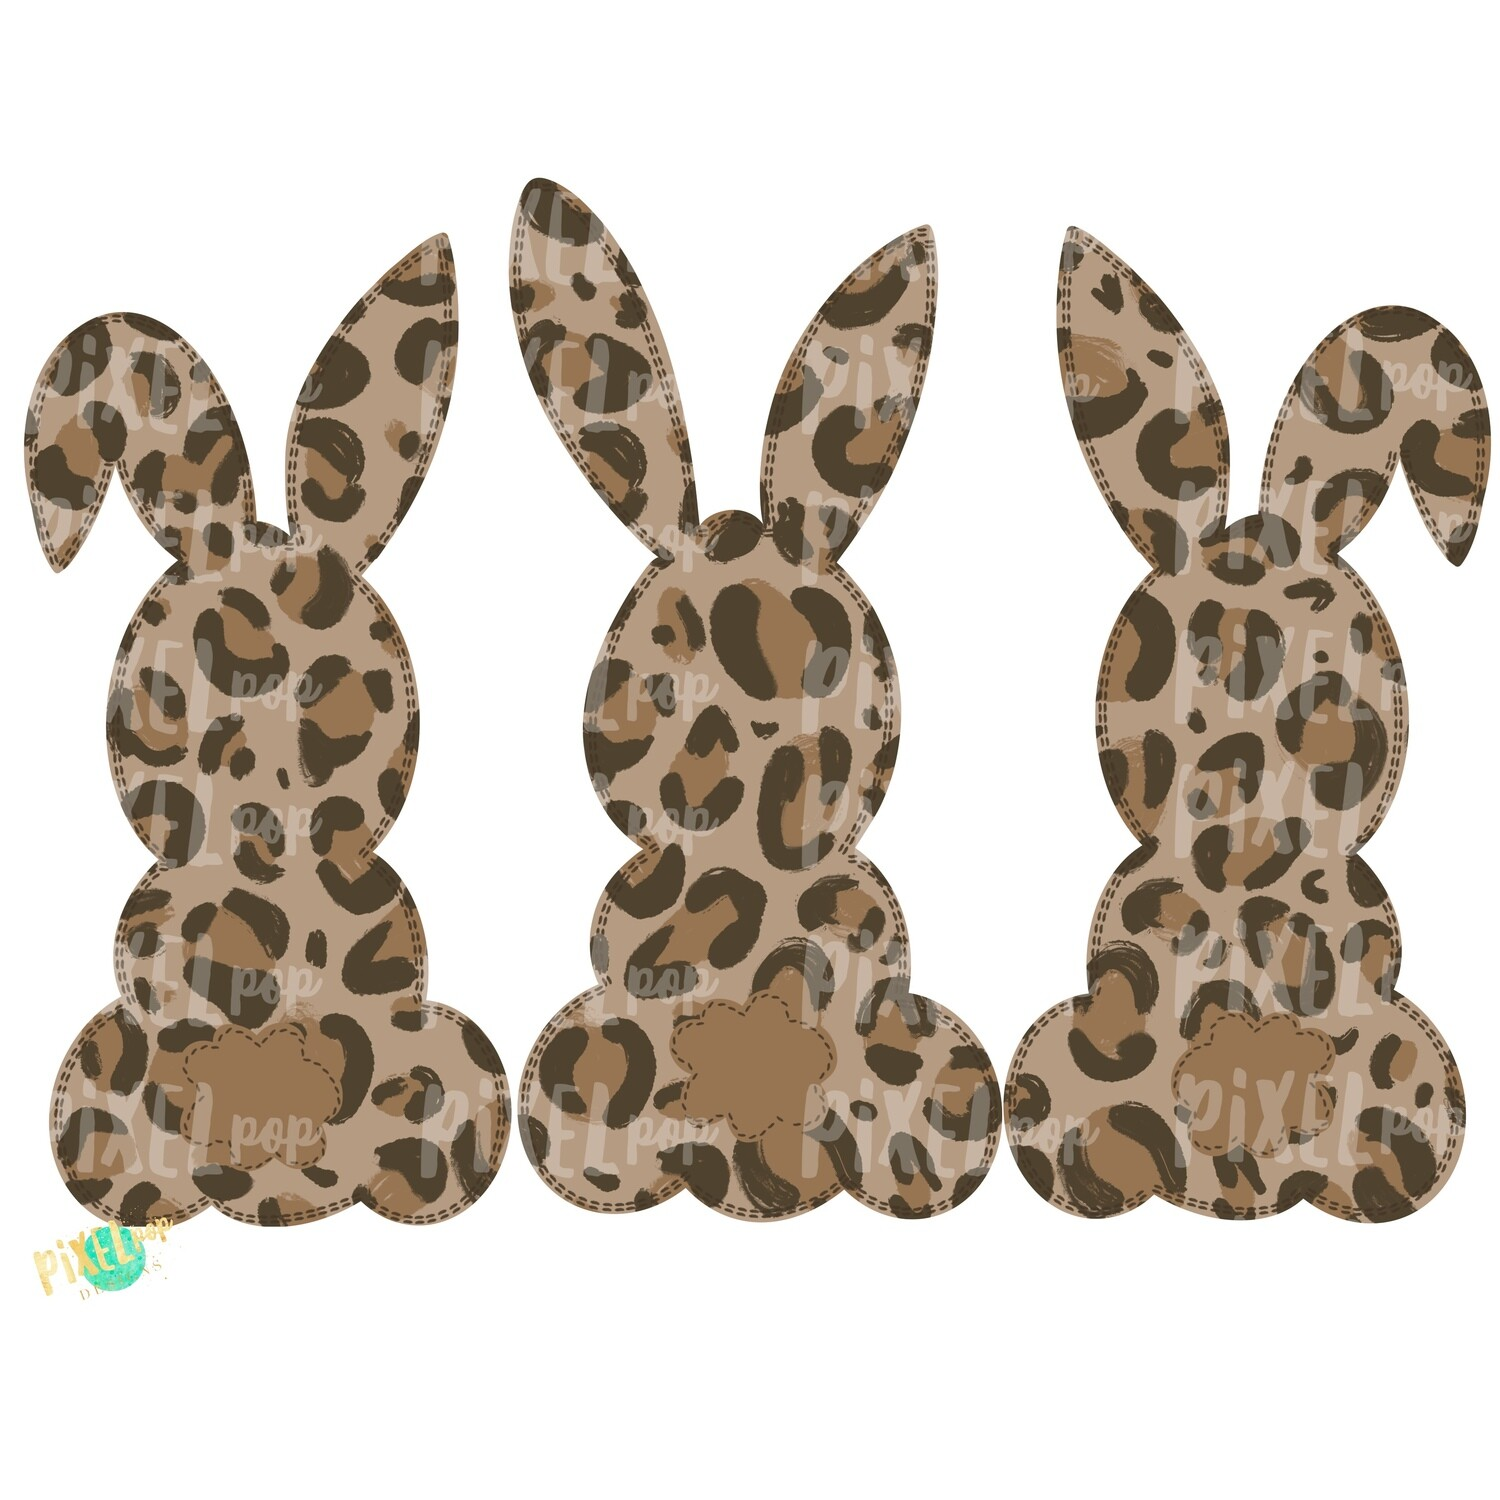 Bunny Silhouettes Trio Leopard Print PNG | Bunny | |Cheetah | Easter Design | Bunny Design | Easter PNG | Sublimation Design | Digital Art